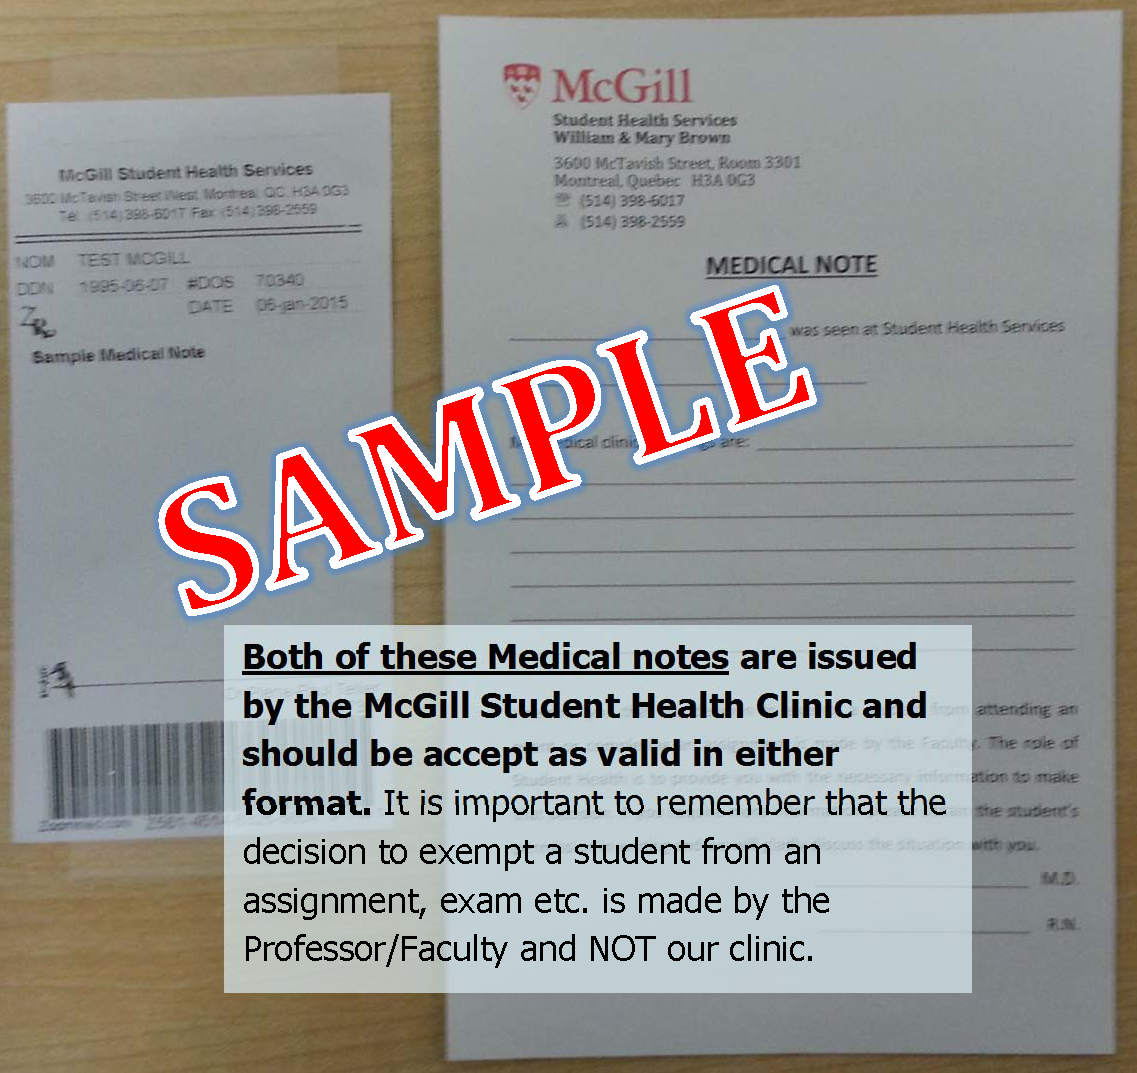 Medical Notes Records Student Health Service Mcgill University